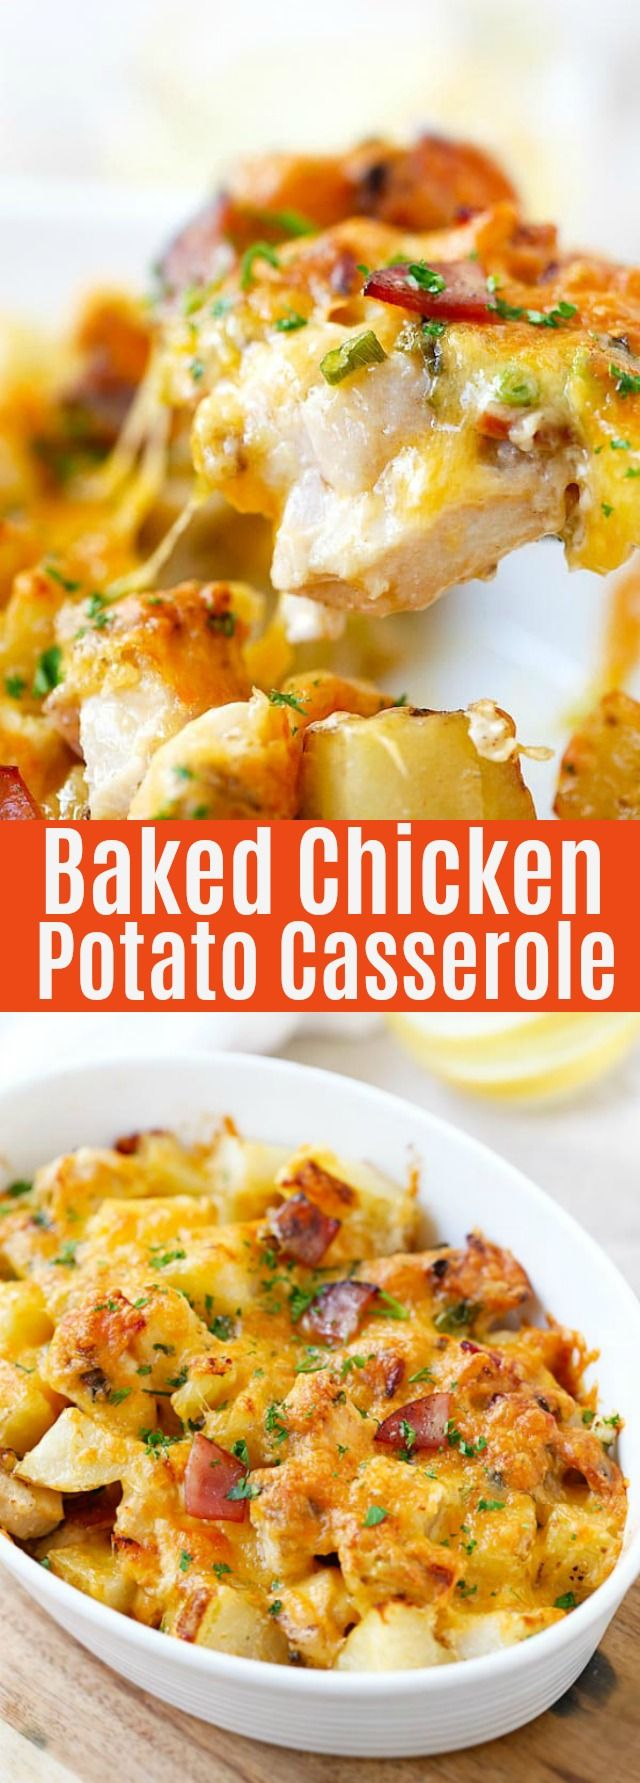 Baked Chicken and Potato Casserole images